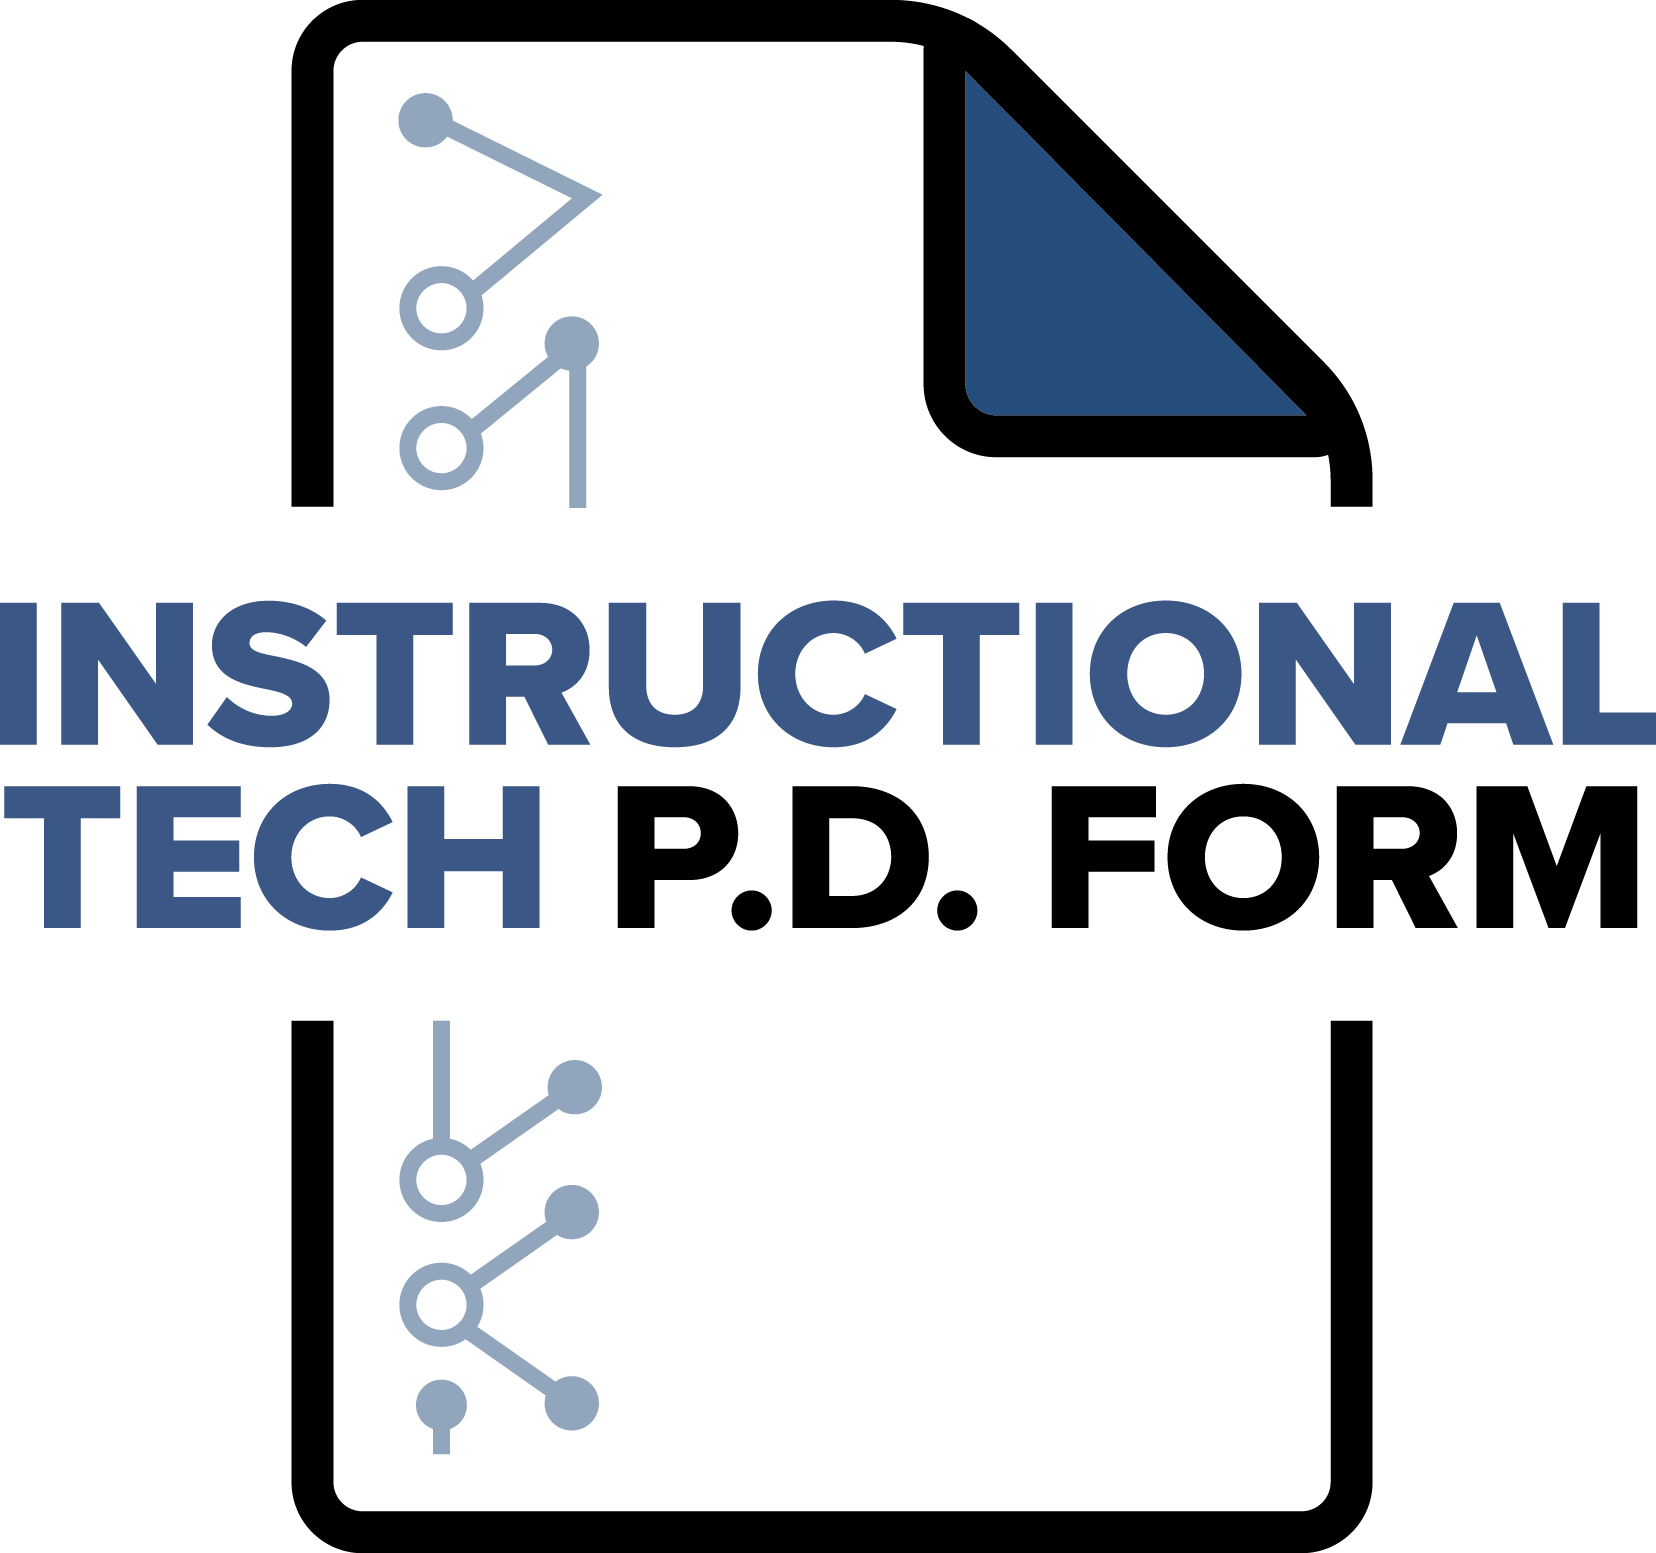 instructional technology form